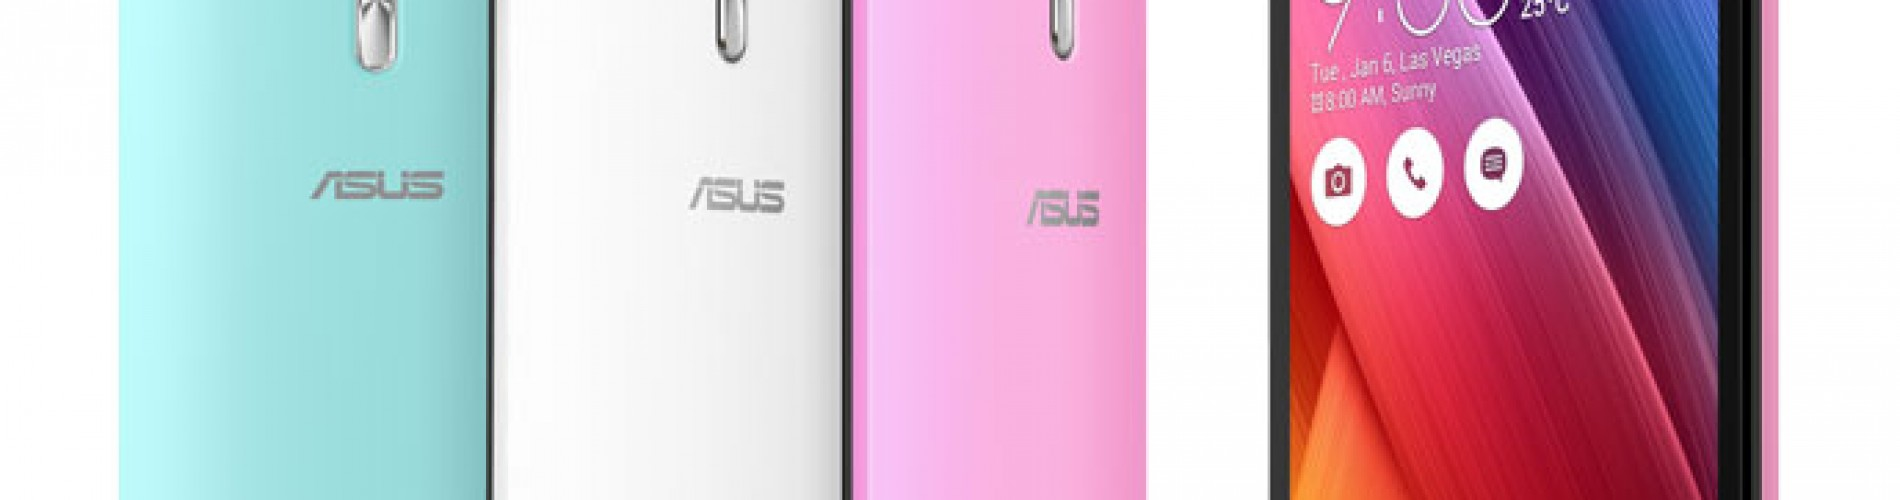 Asus intros the ZenFone Selfie at Computex